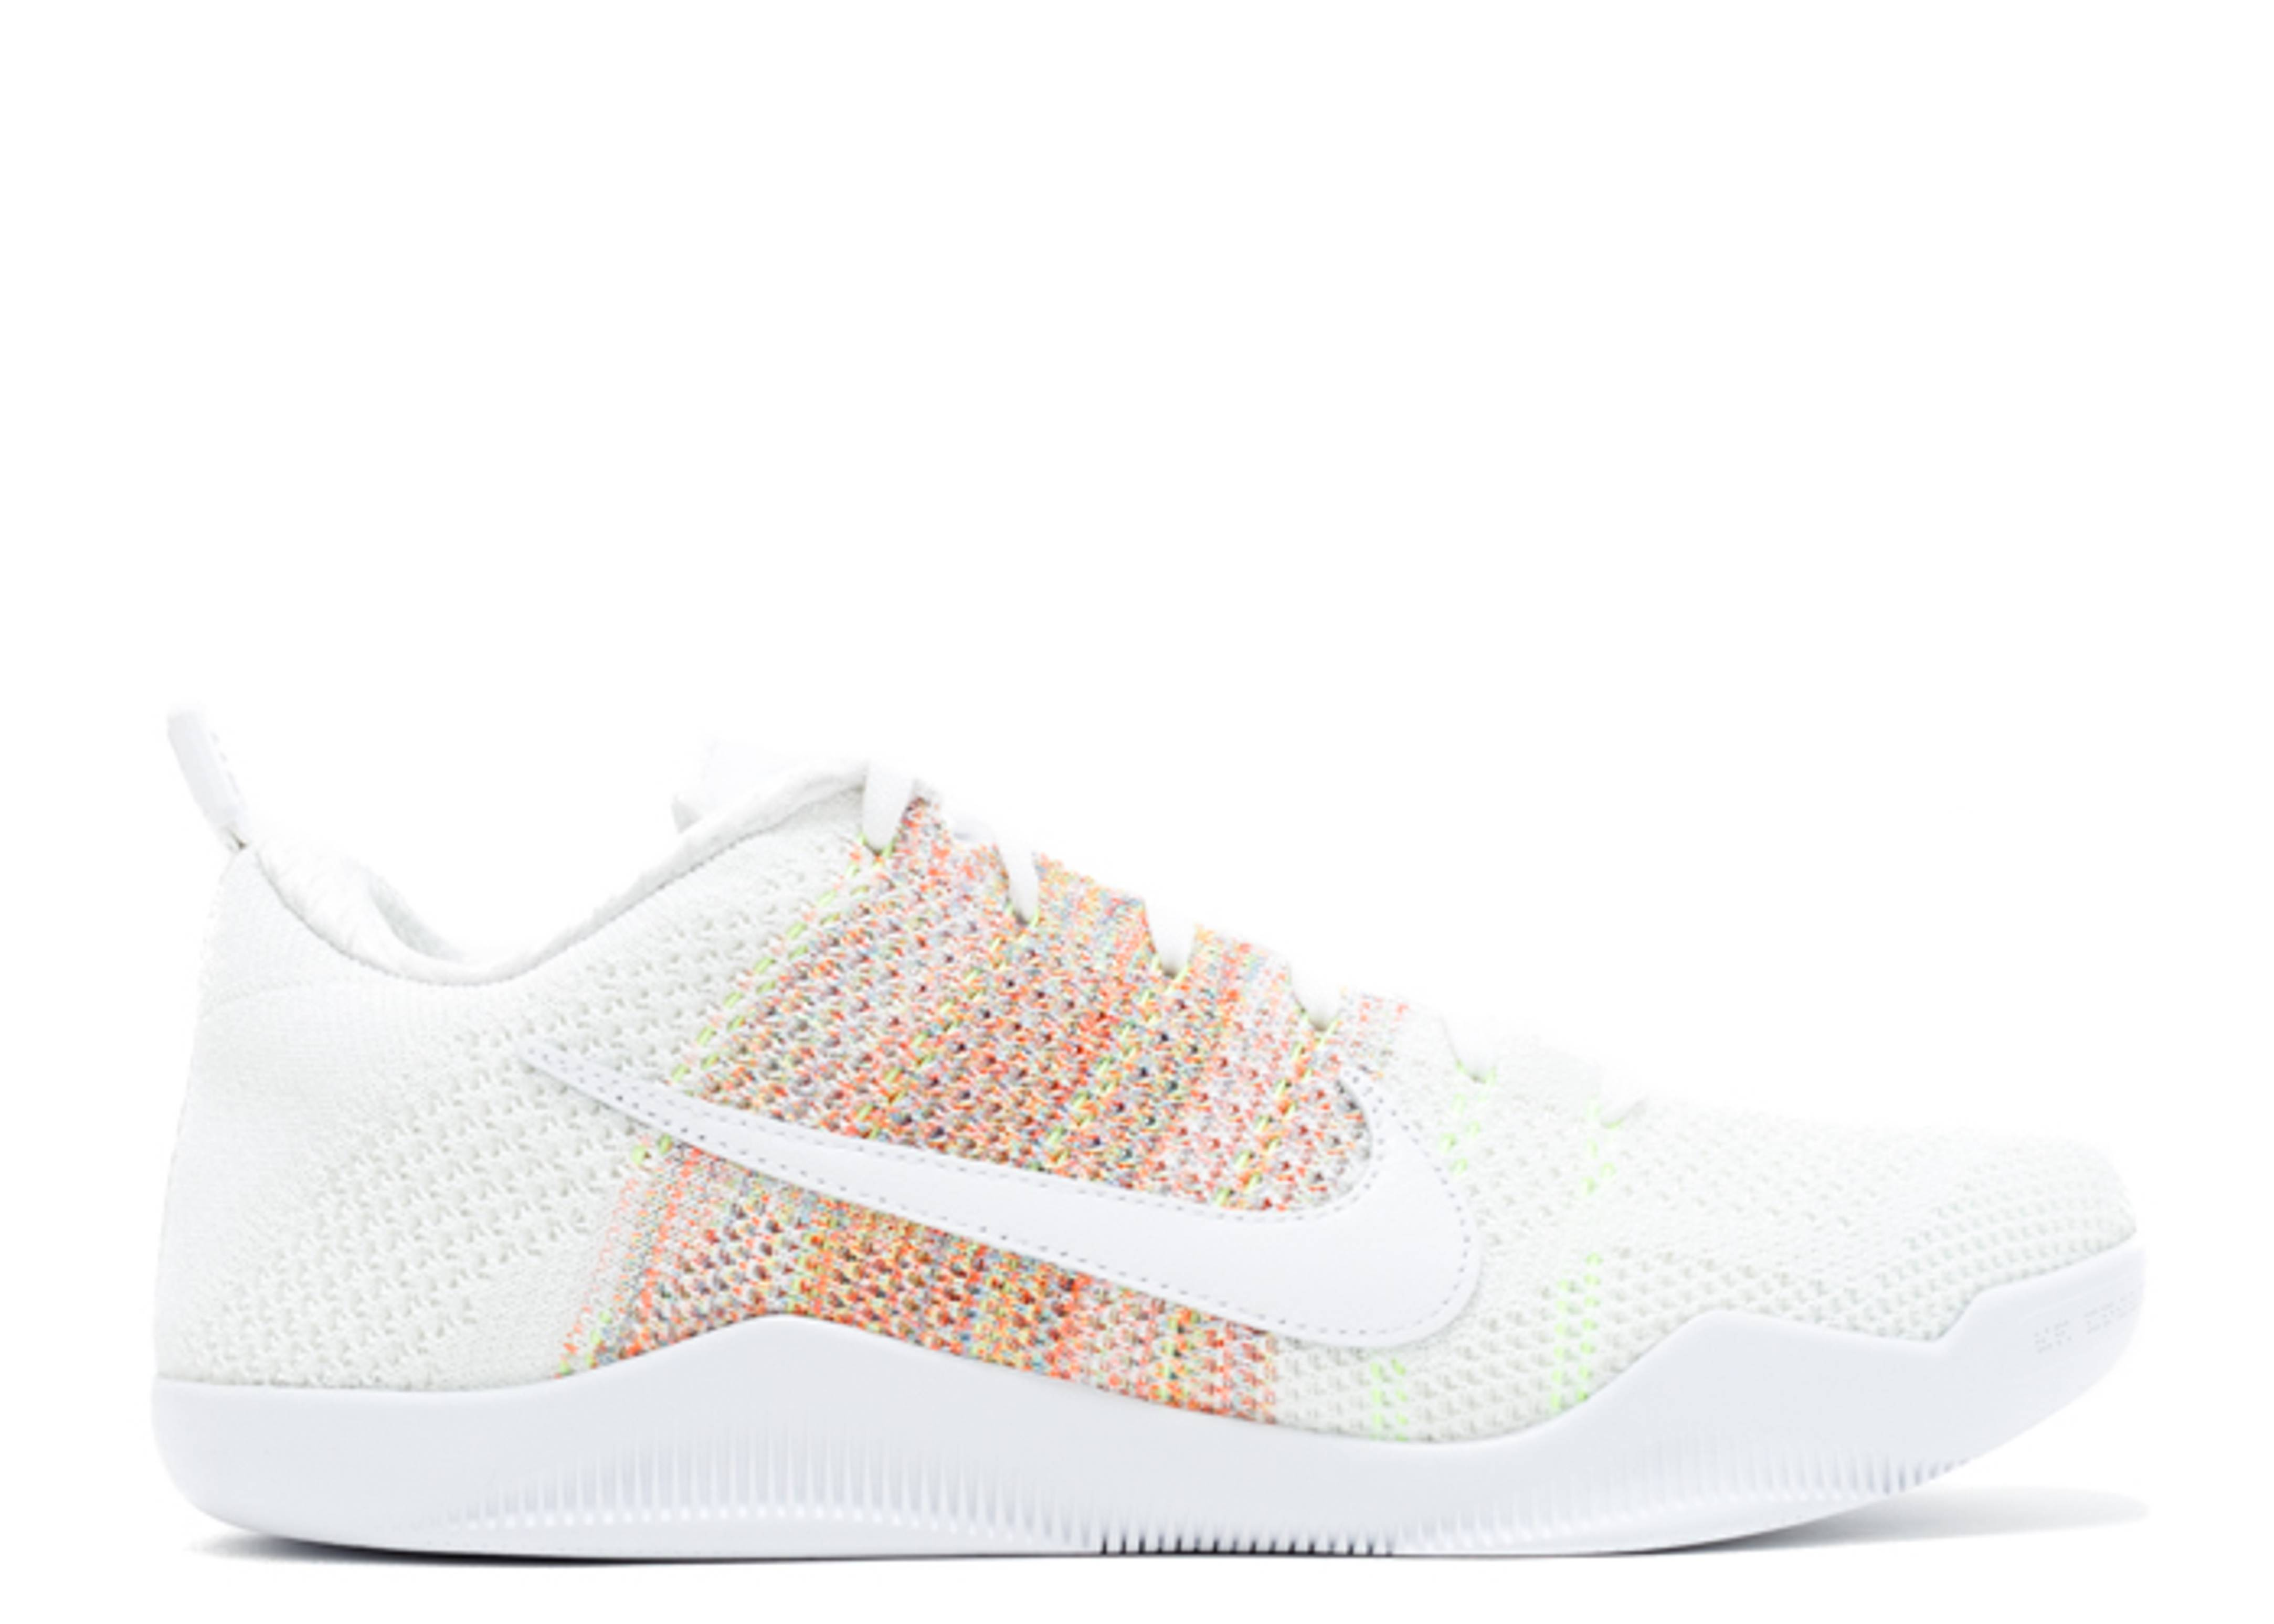 0dcc80d75c96 Kobe 11 Elite Low 4kb - Nike - 824463 199 - white multi-color-multi ...